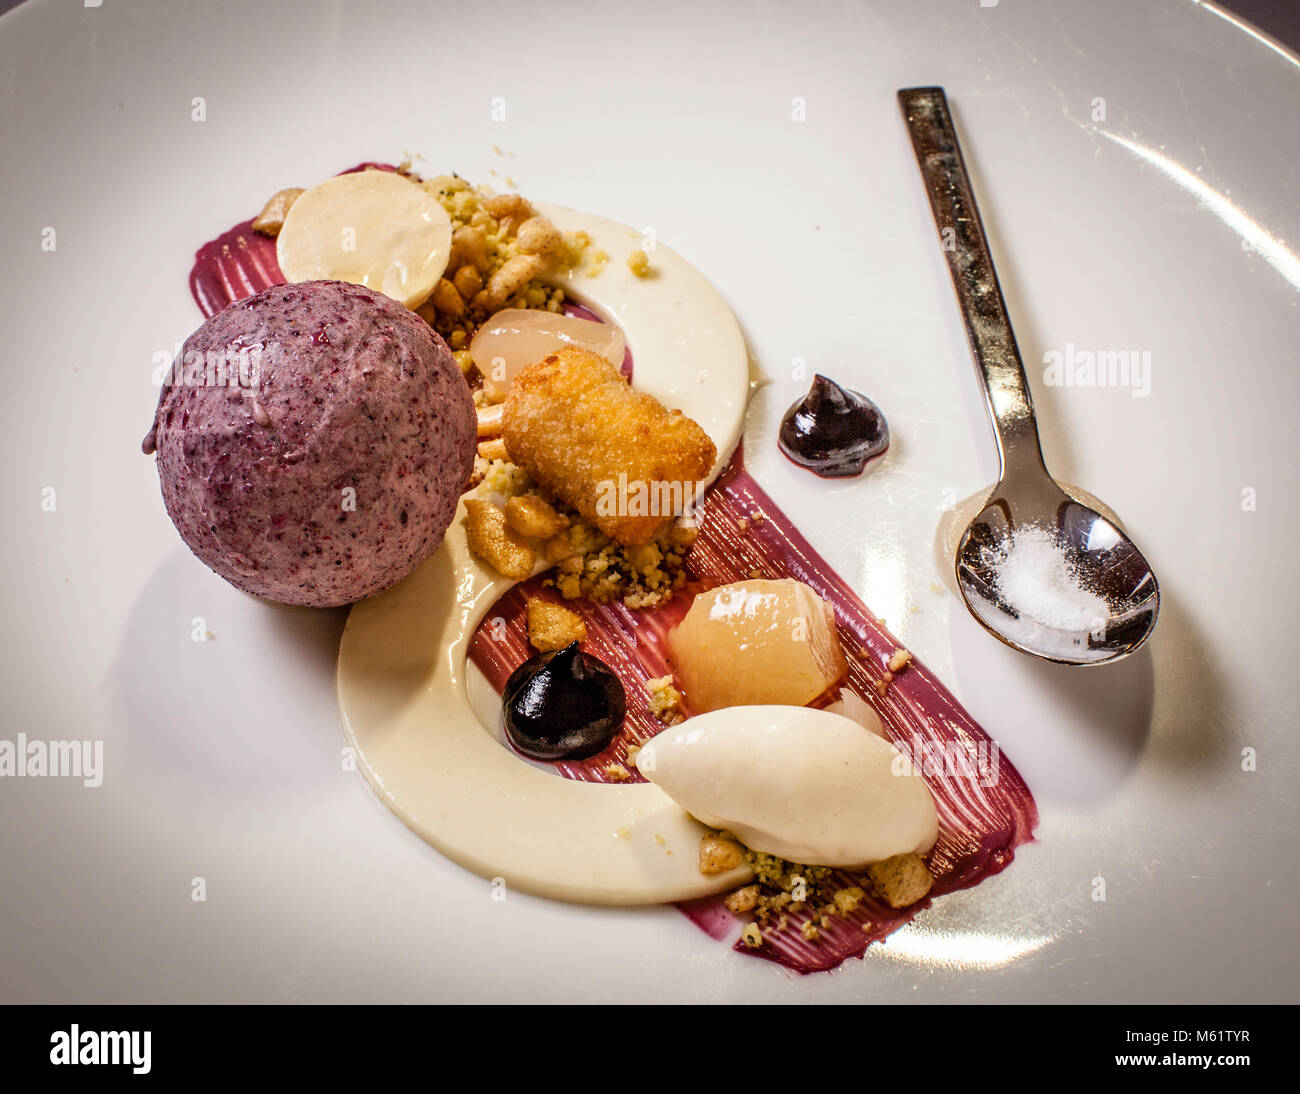 fine dining in Oberstdorf Restaurant Maximilinas Michelin Star chef dinner Tobias Eisele, dessert with blackcurrent - Stock Image